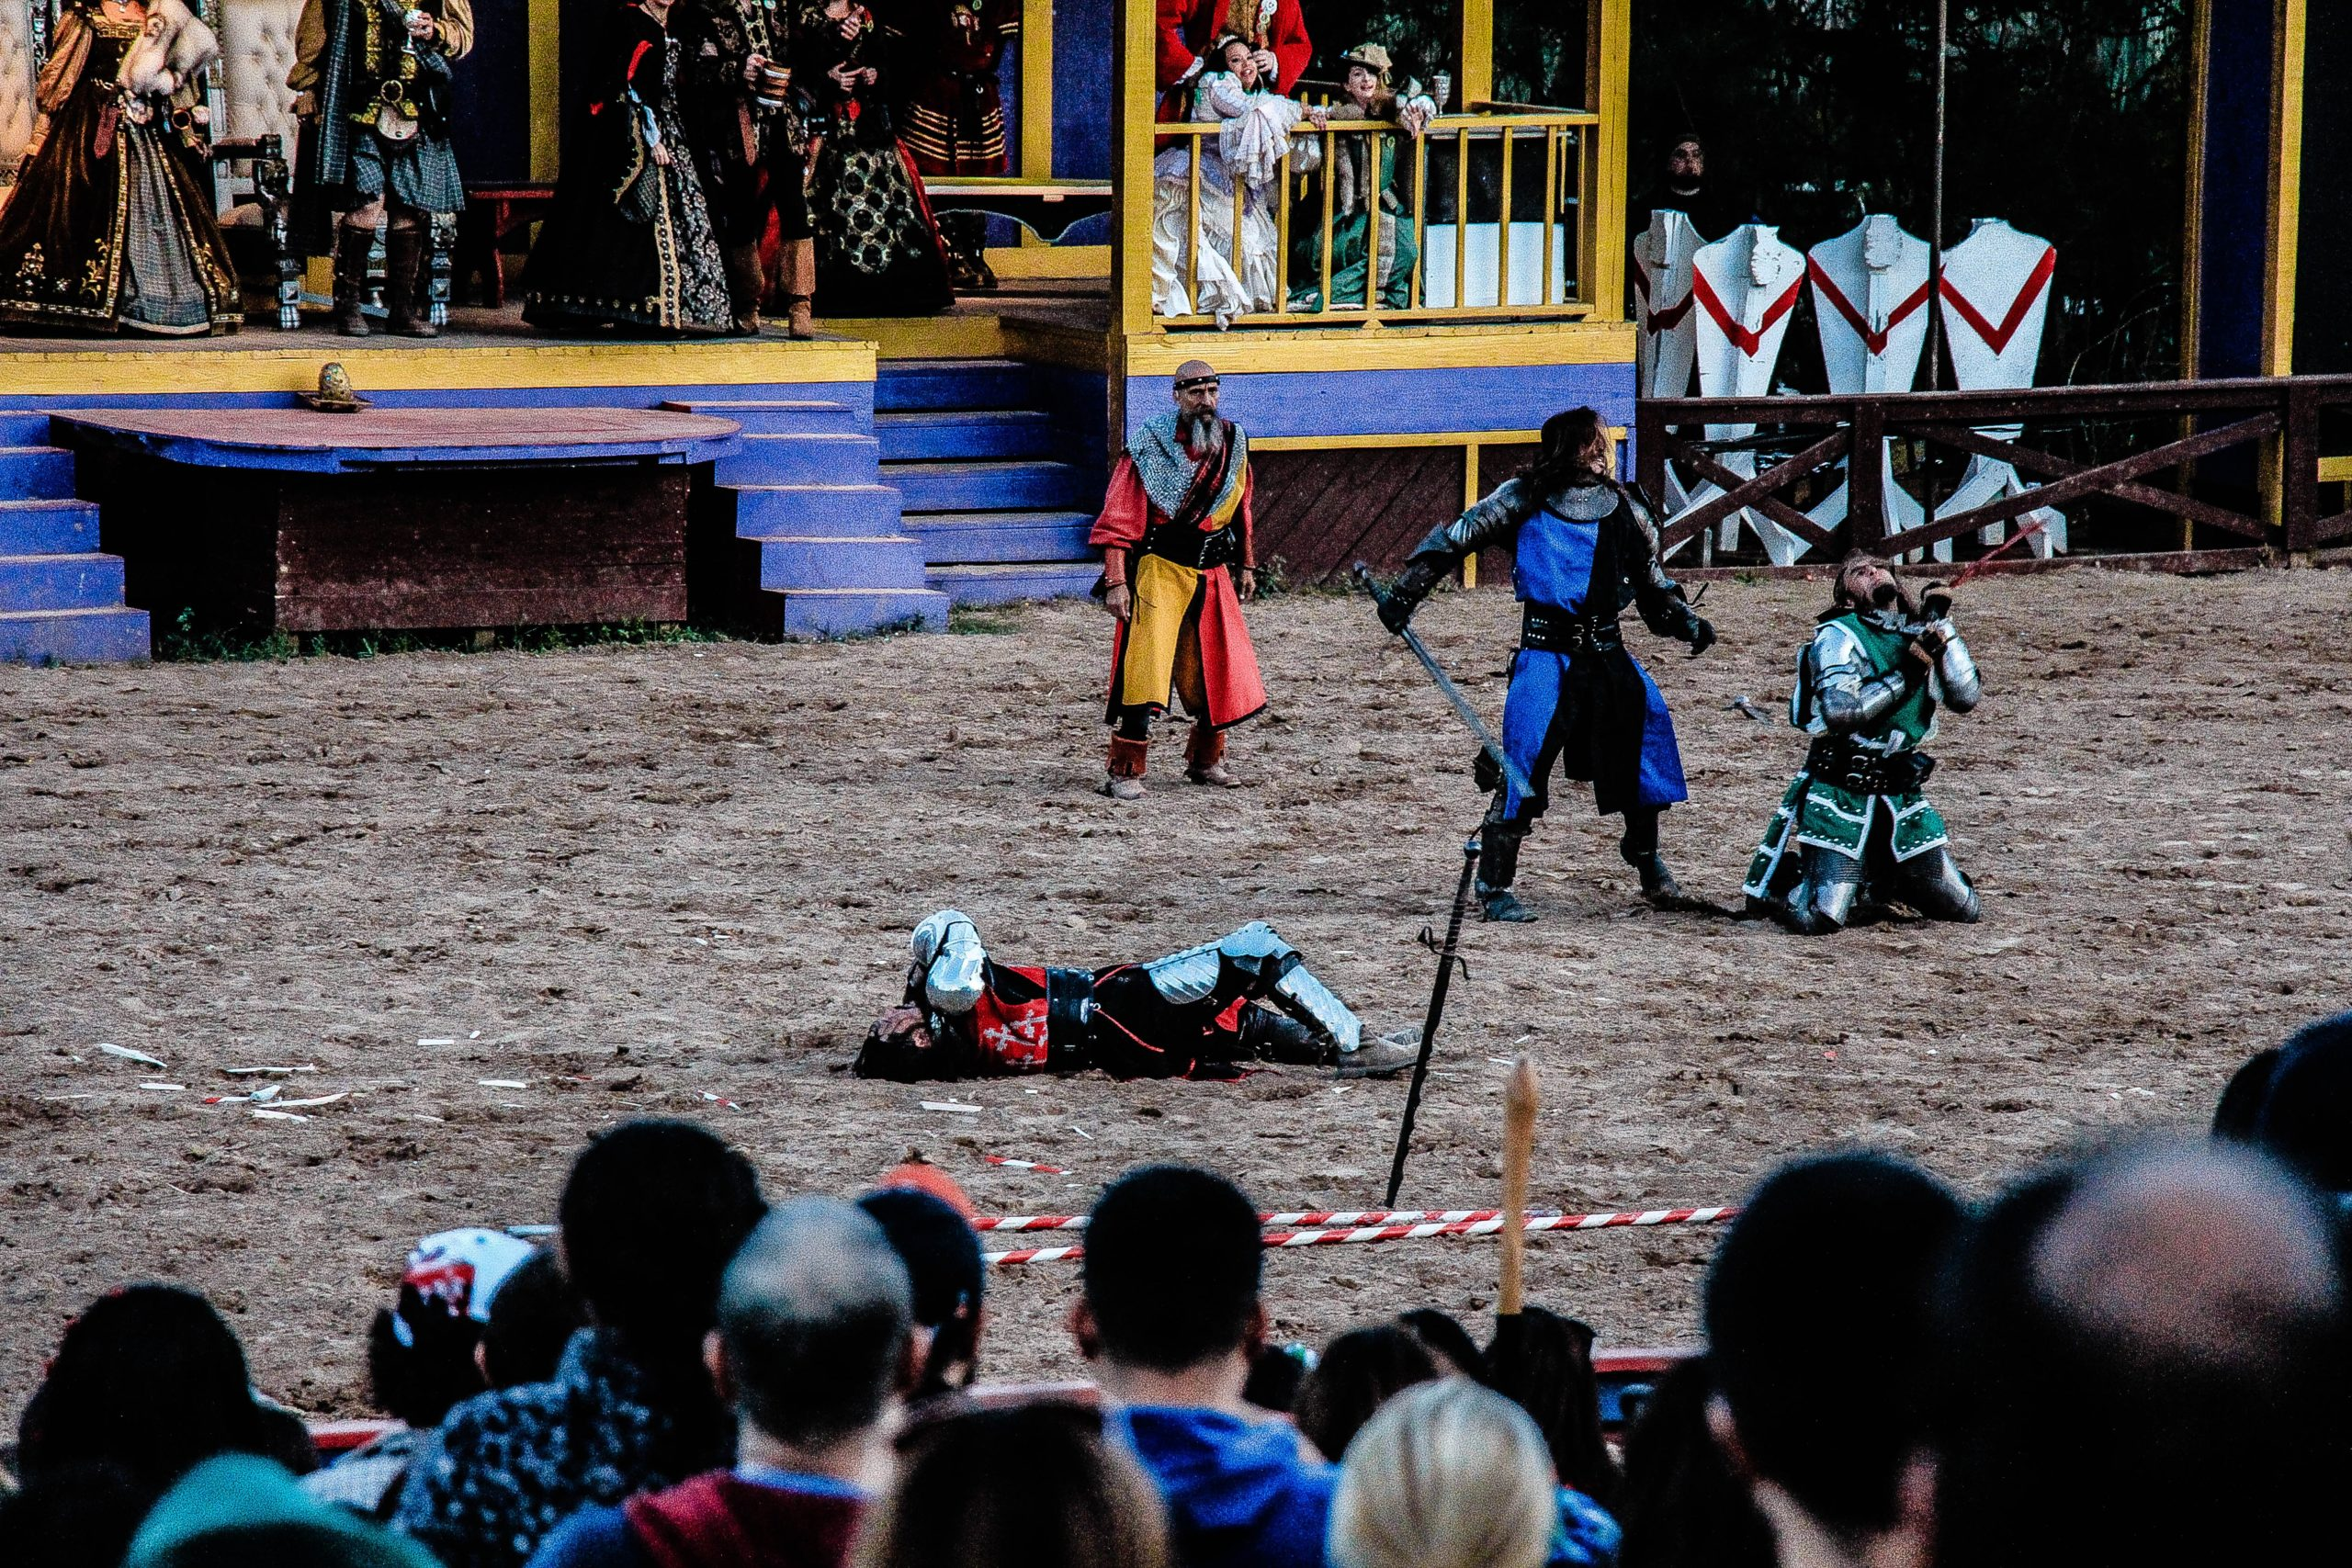 Knights fighting on the stage of a dinner theater while the audience watches.